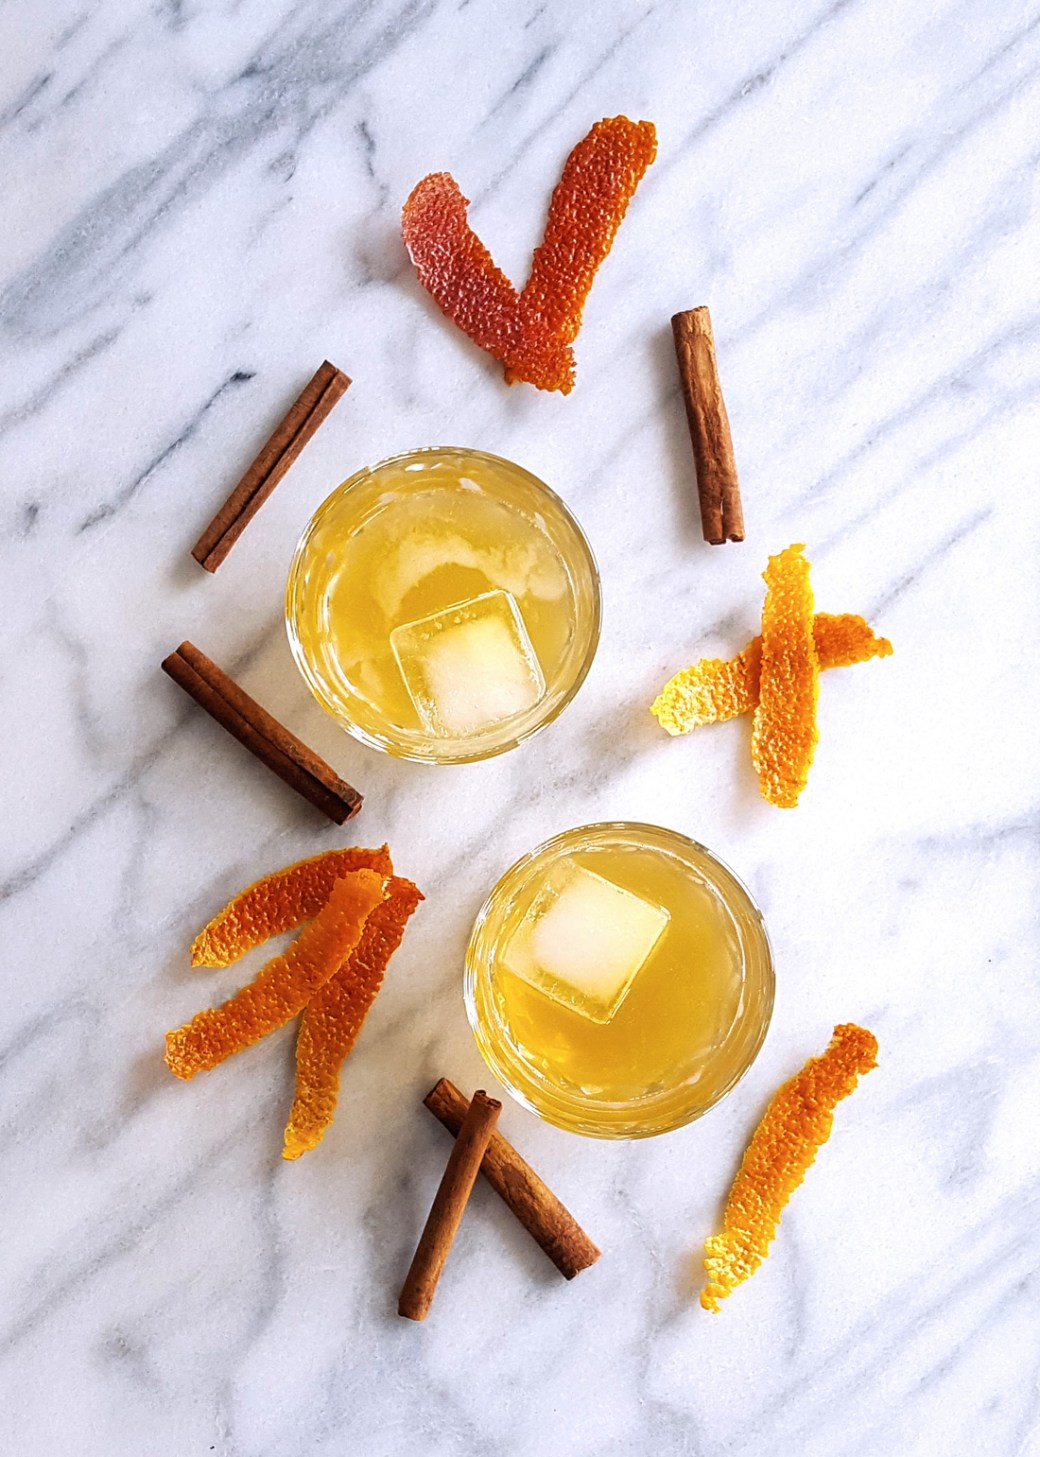 With a rich cinnamon syrup & the scent of blood orange, this Cinnamon Spiced Old Fashioned Cocktail will keep you (and your company) cozy on even the chilliest days. | FeastInThyme.com